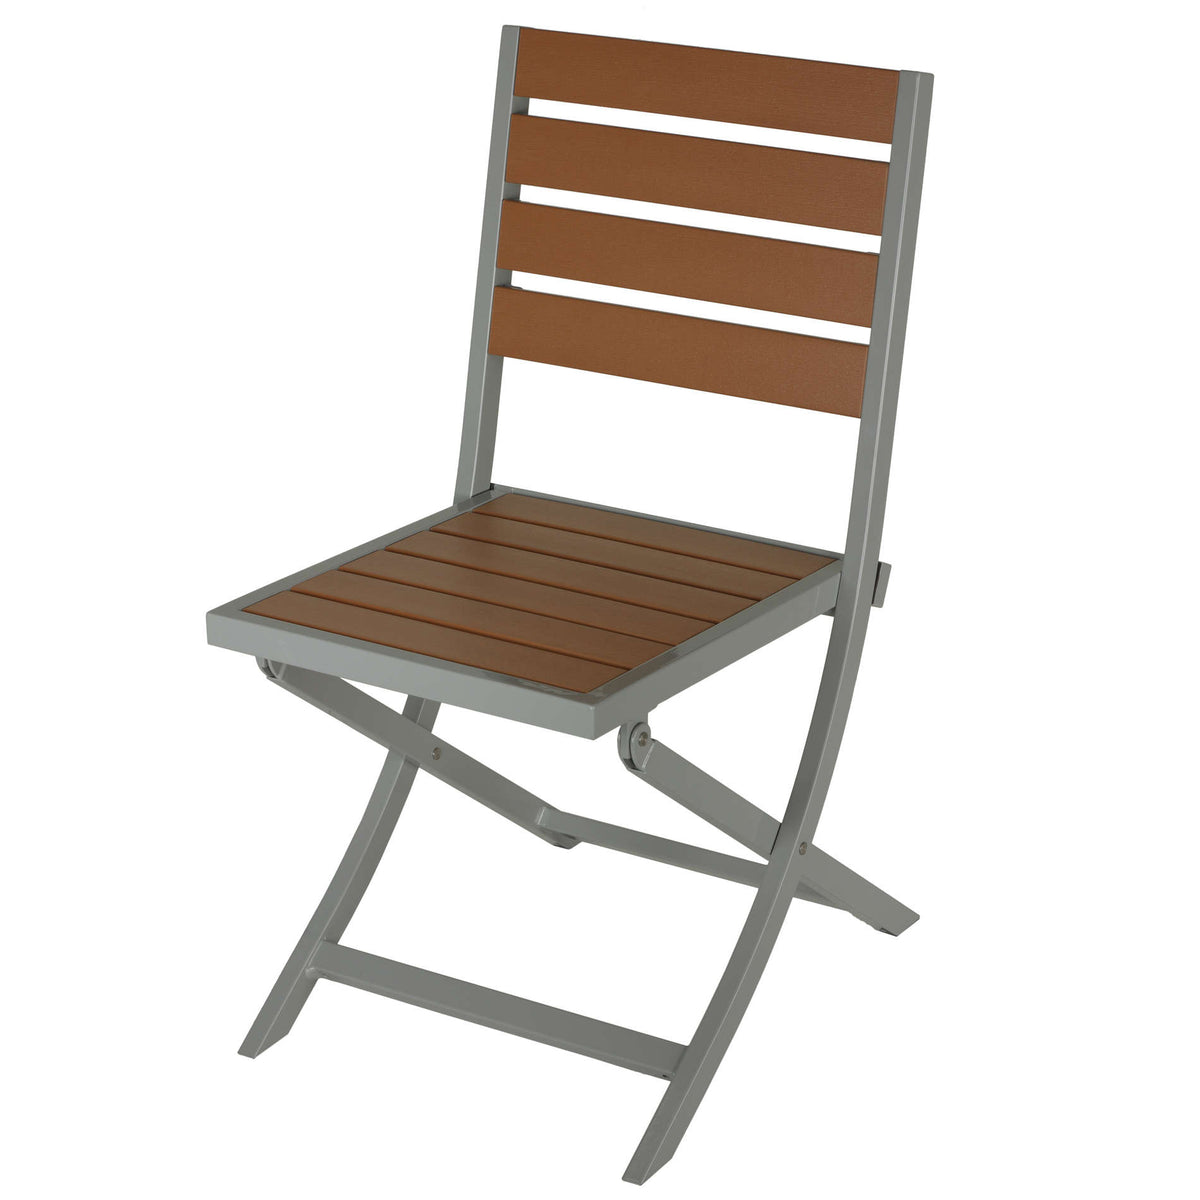 Cortesi Home Avery Aluminum Outdoor Folding Chair in Teak Color Poly Resin, 1 chair